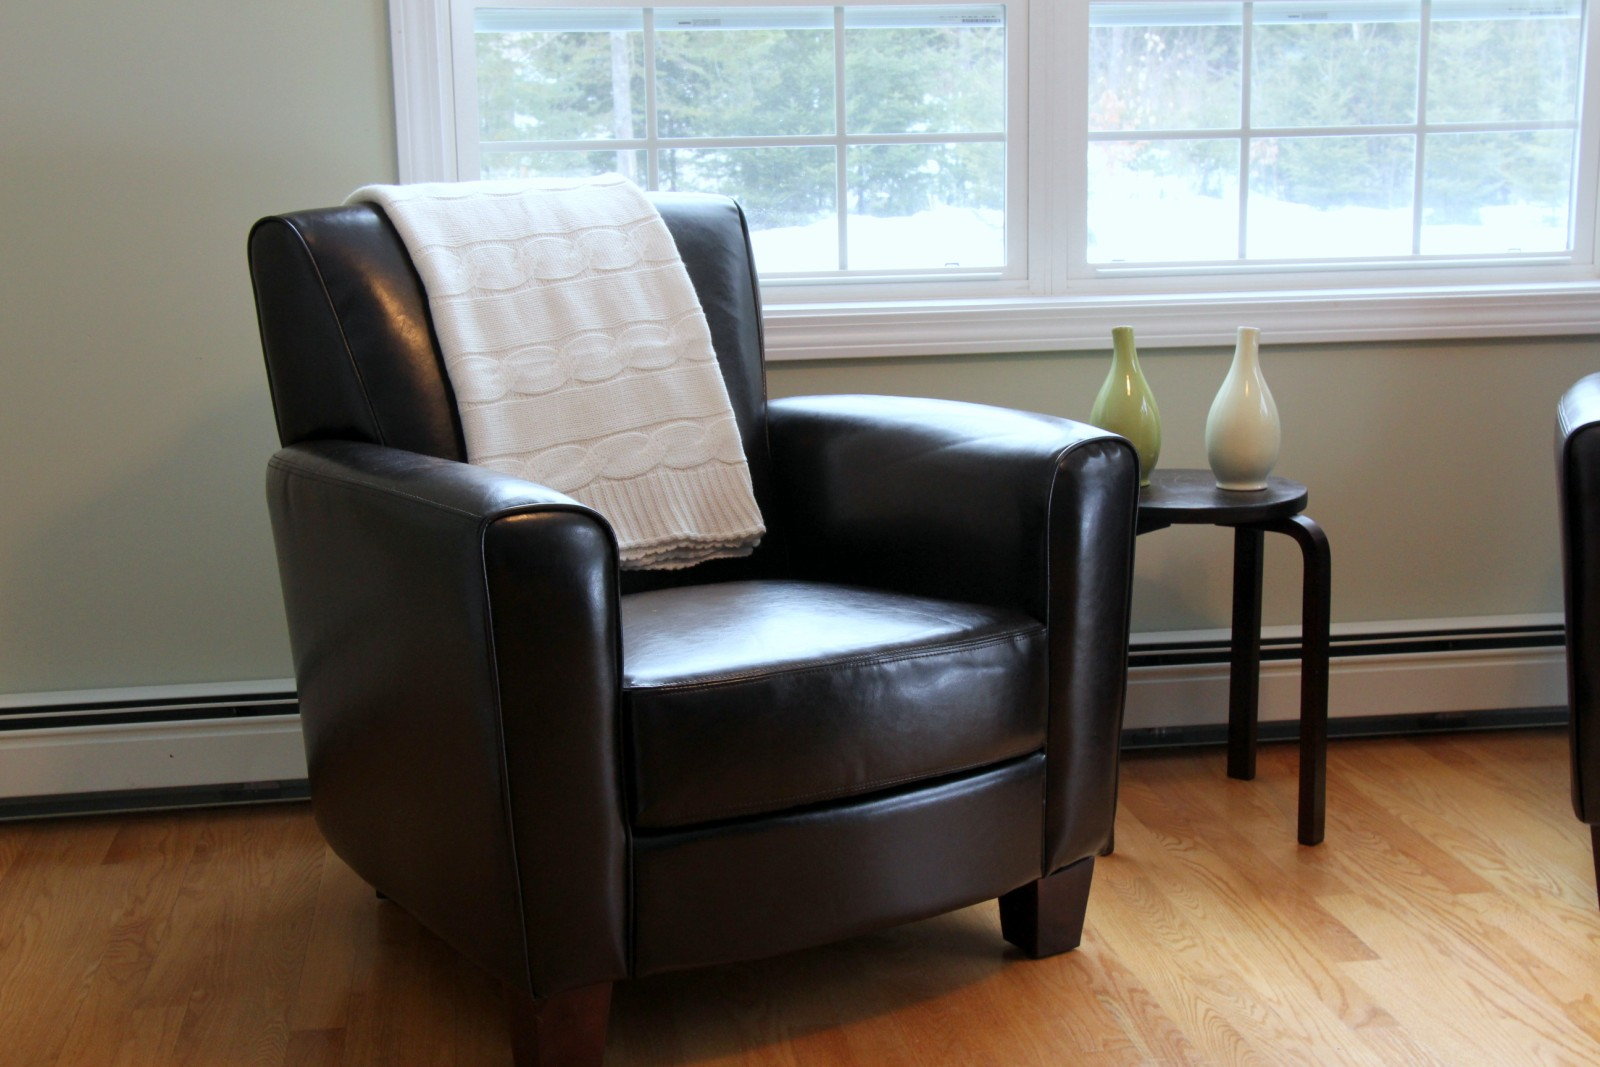 Leather Chairs Target Wedding Chair Covers Dundee Heart Maine Home New For The Front Room